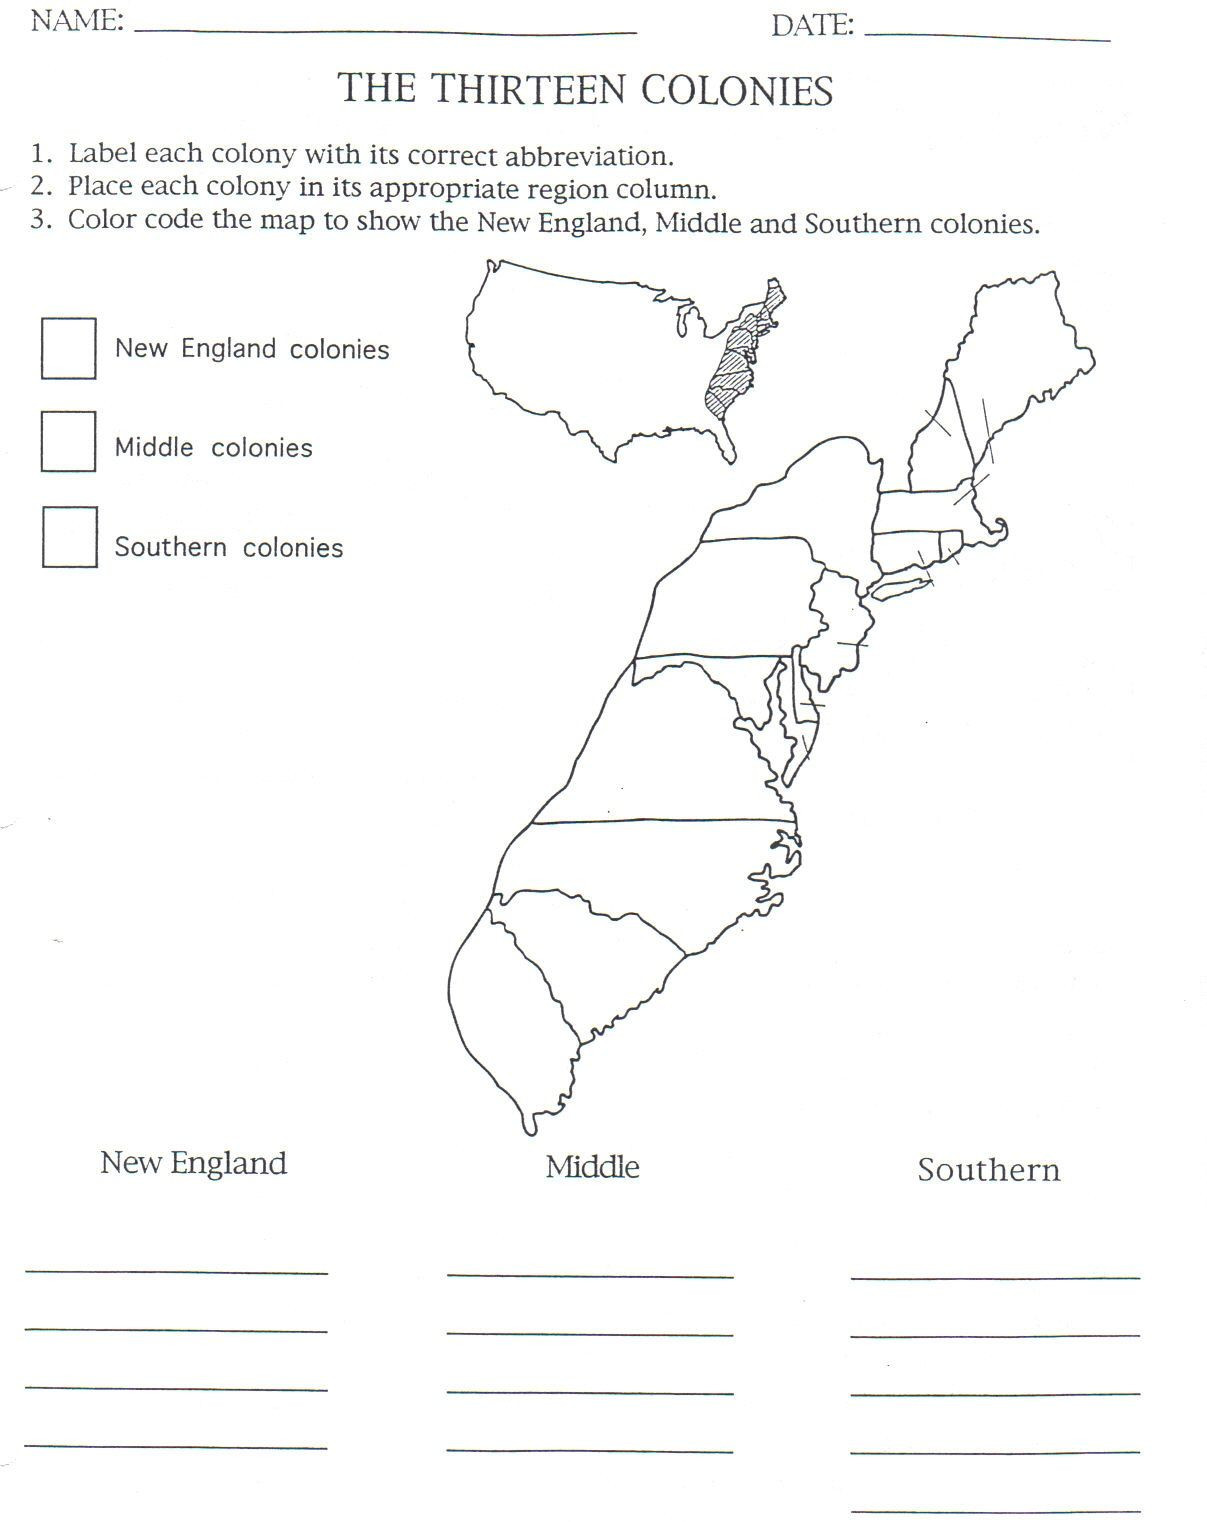 13 Colonies Free Printable Worksheets